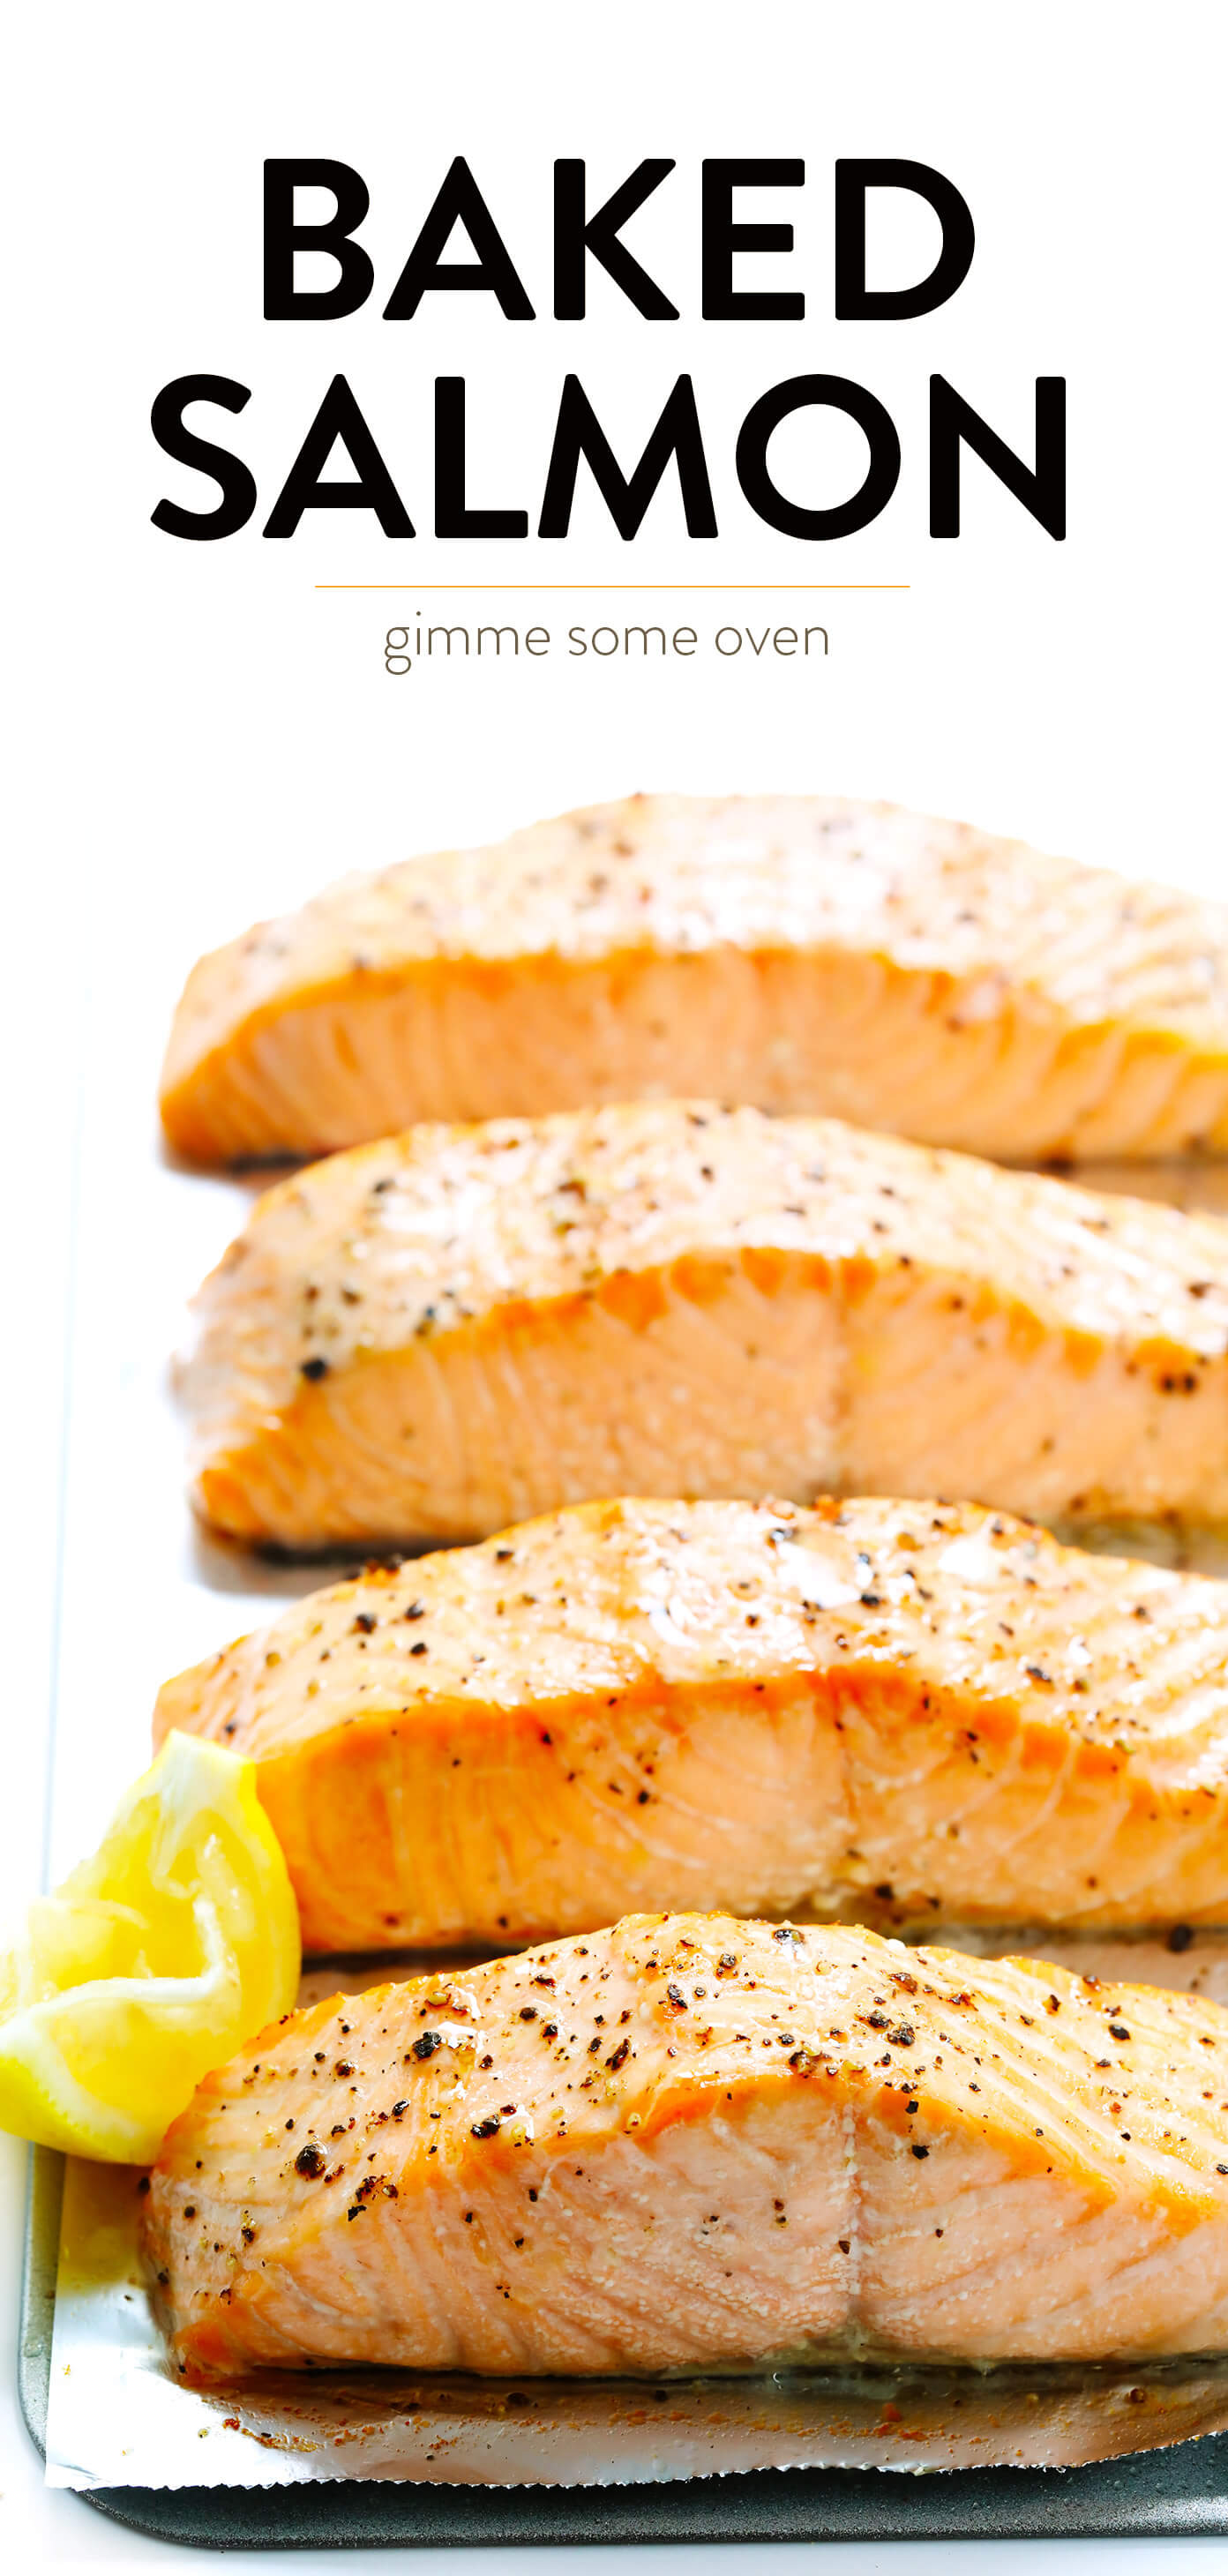 Baked Salmon Recipe | Gimme Some Oven